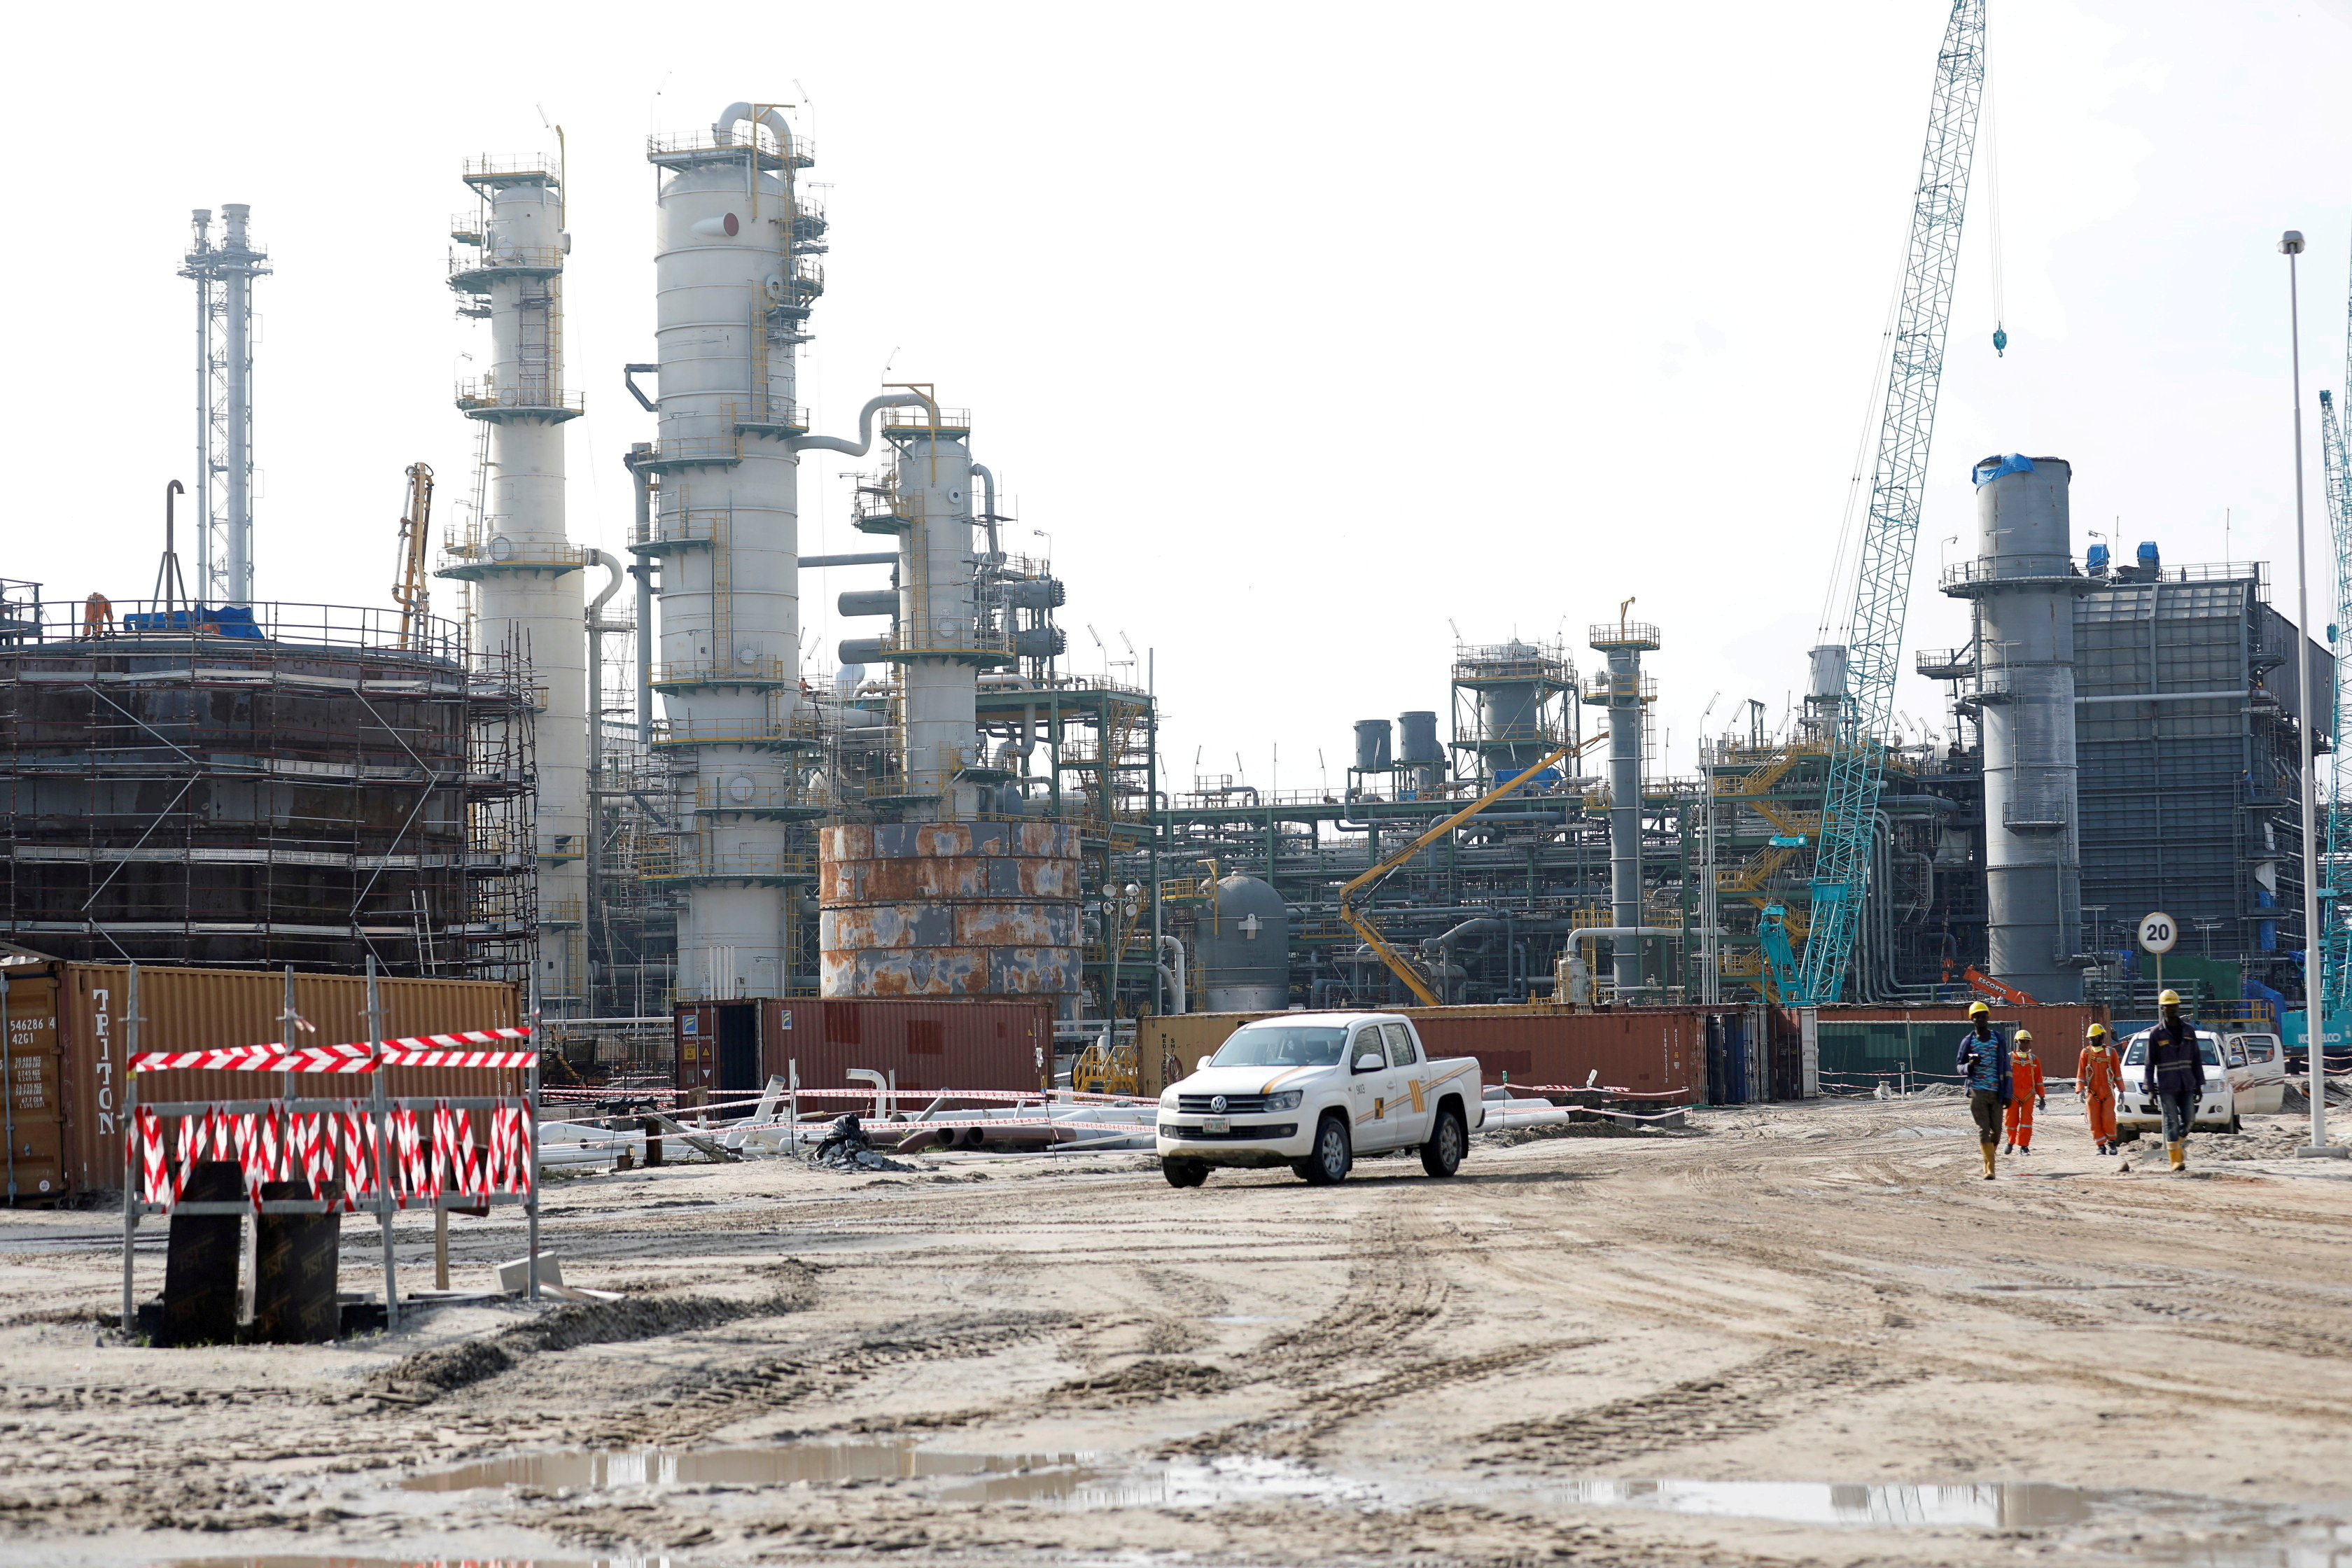 View of the Dangote Oil Refinery under construction in Ibeju Lekki district, on the outskirts of  Lagos, Nigeria July 5, 2018. REUTERS/Akintunde Akinleye/File Photo